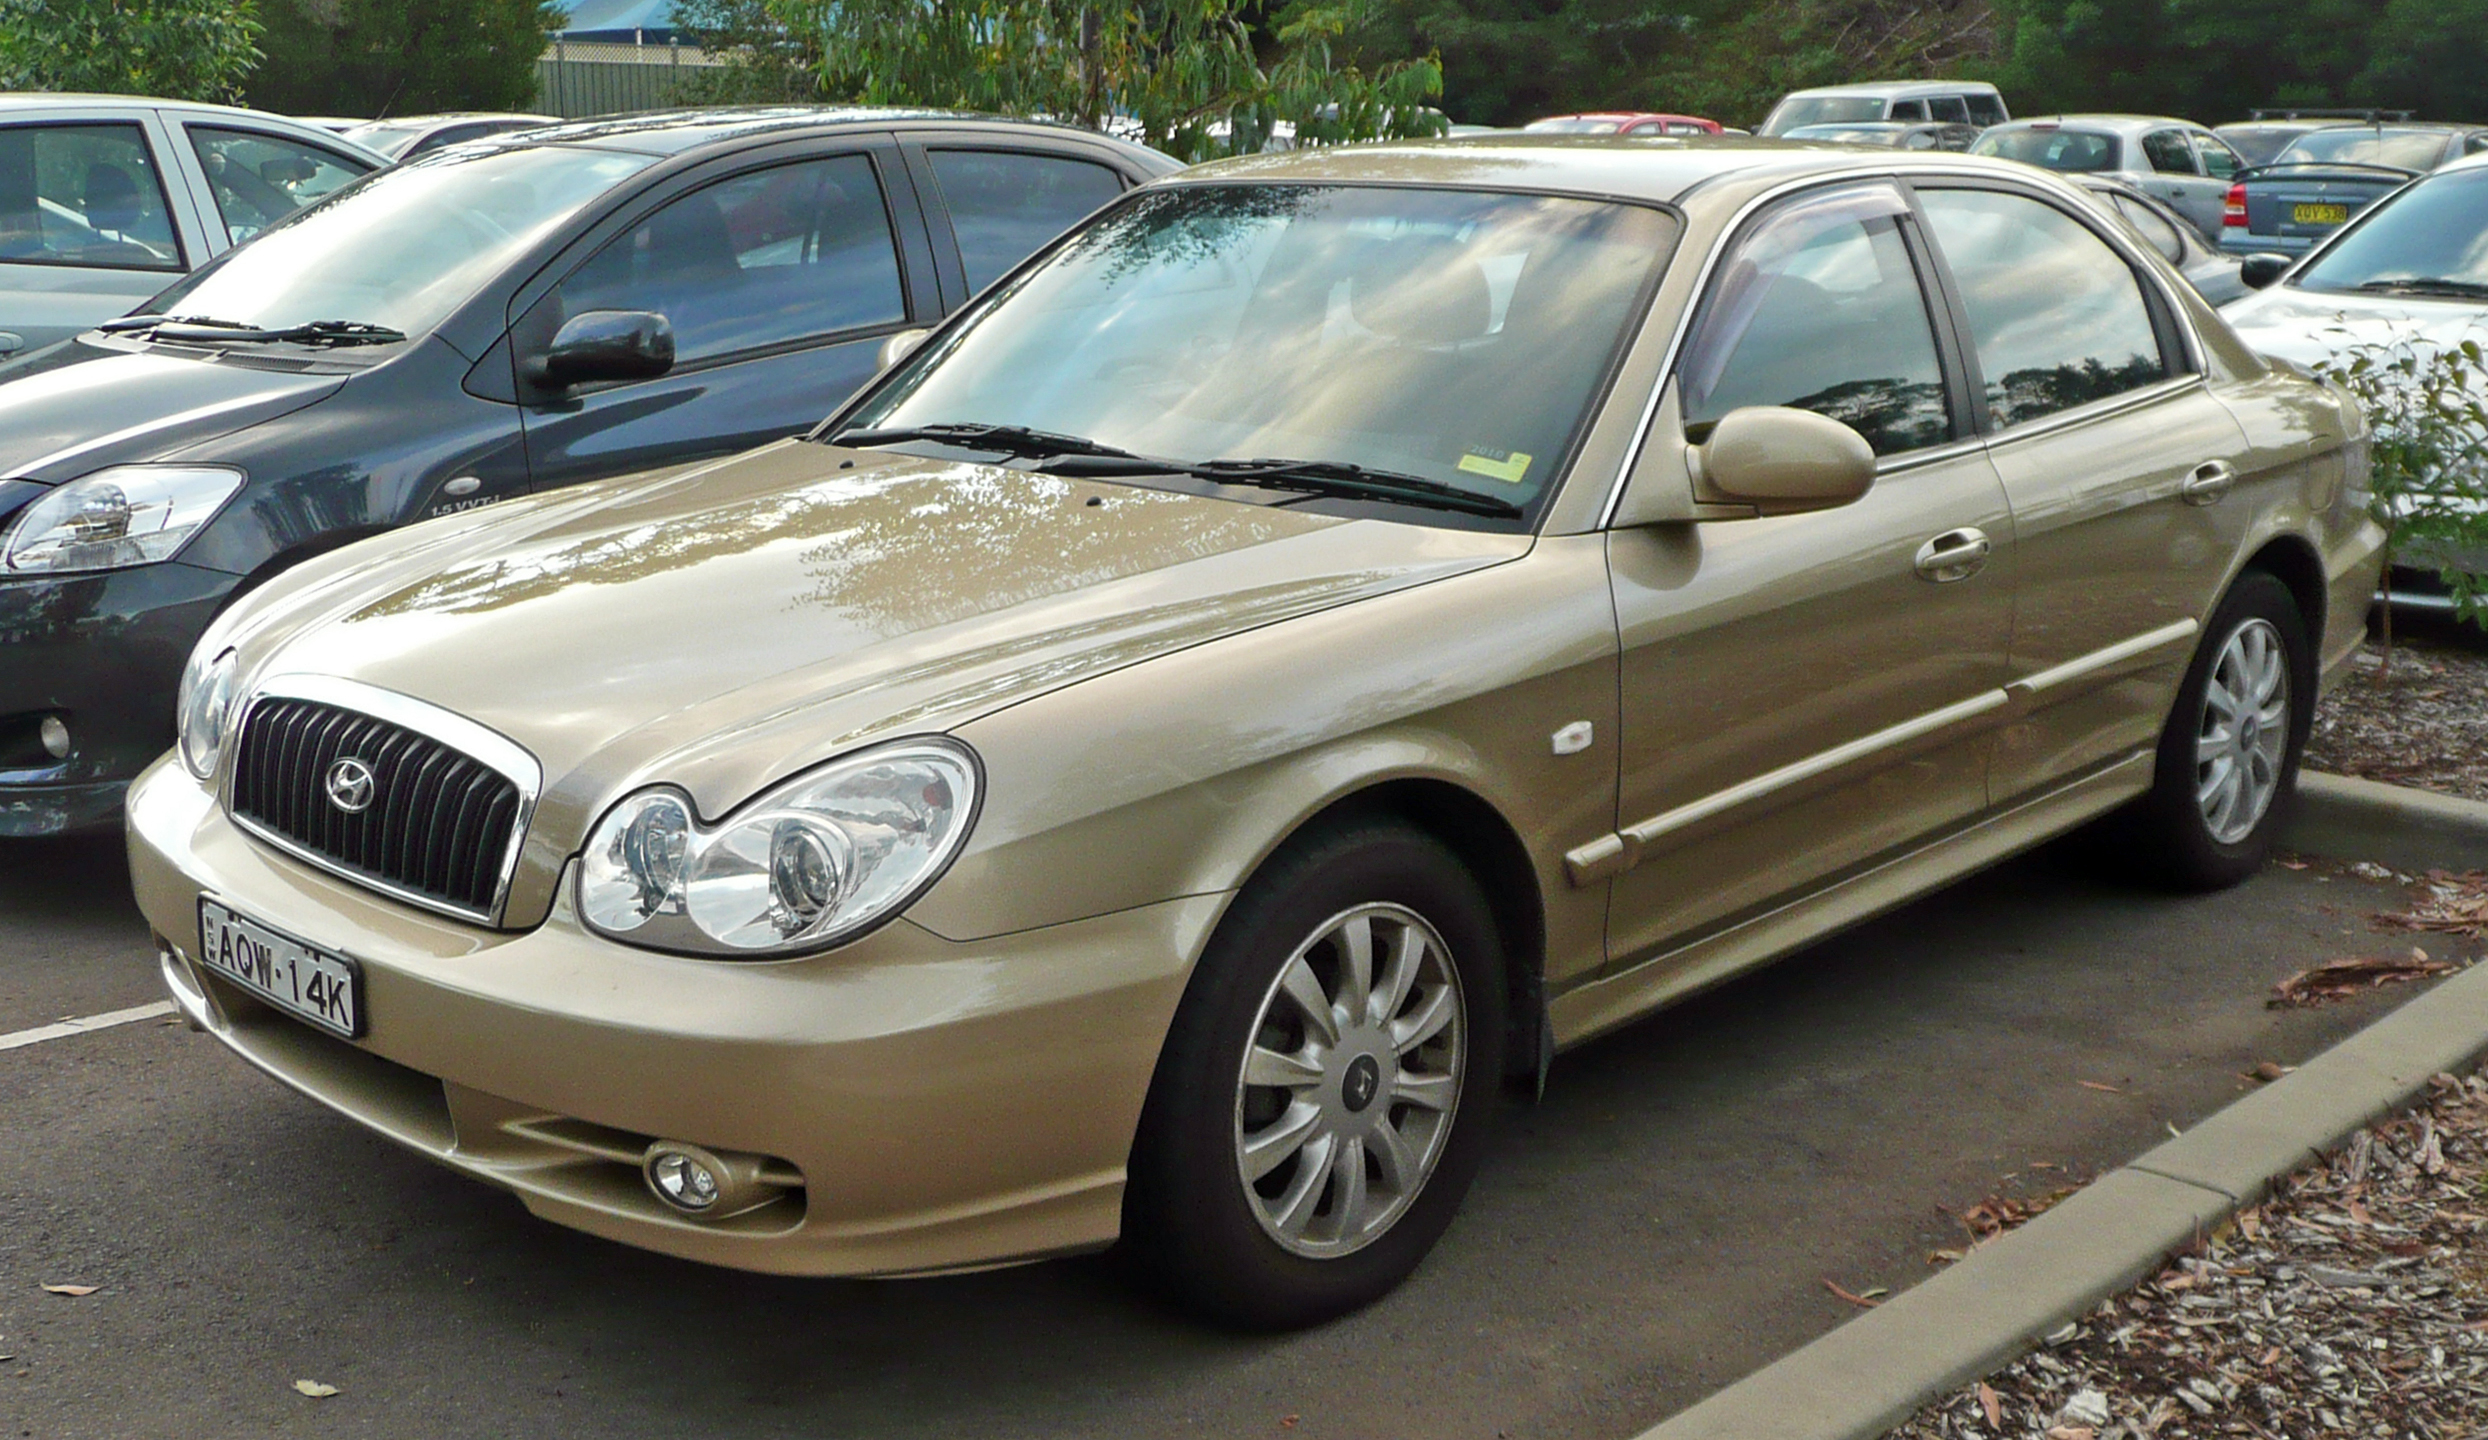 2003 Hyundai Sonata Information And Photos Zombiedrive